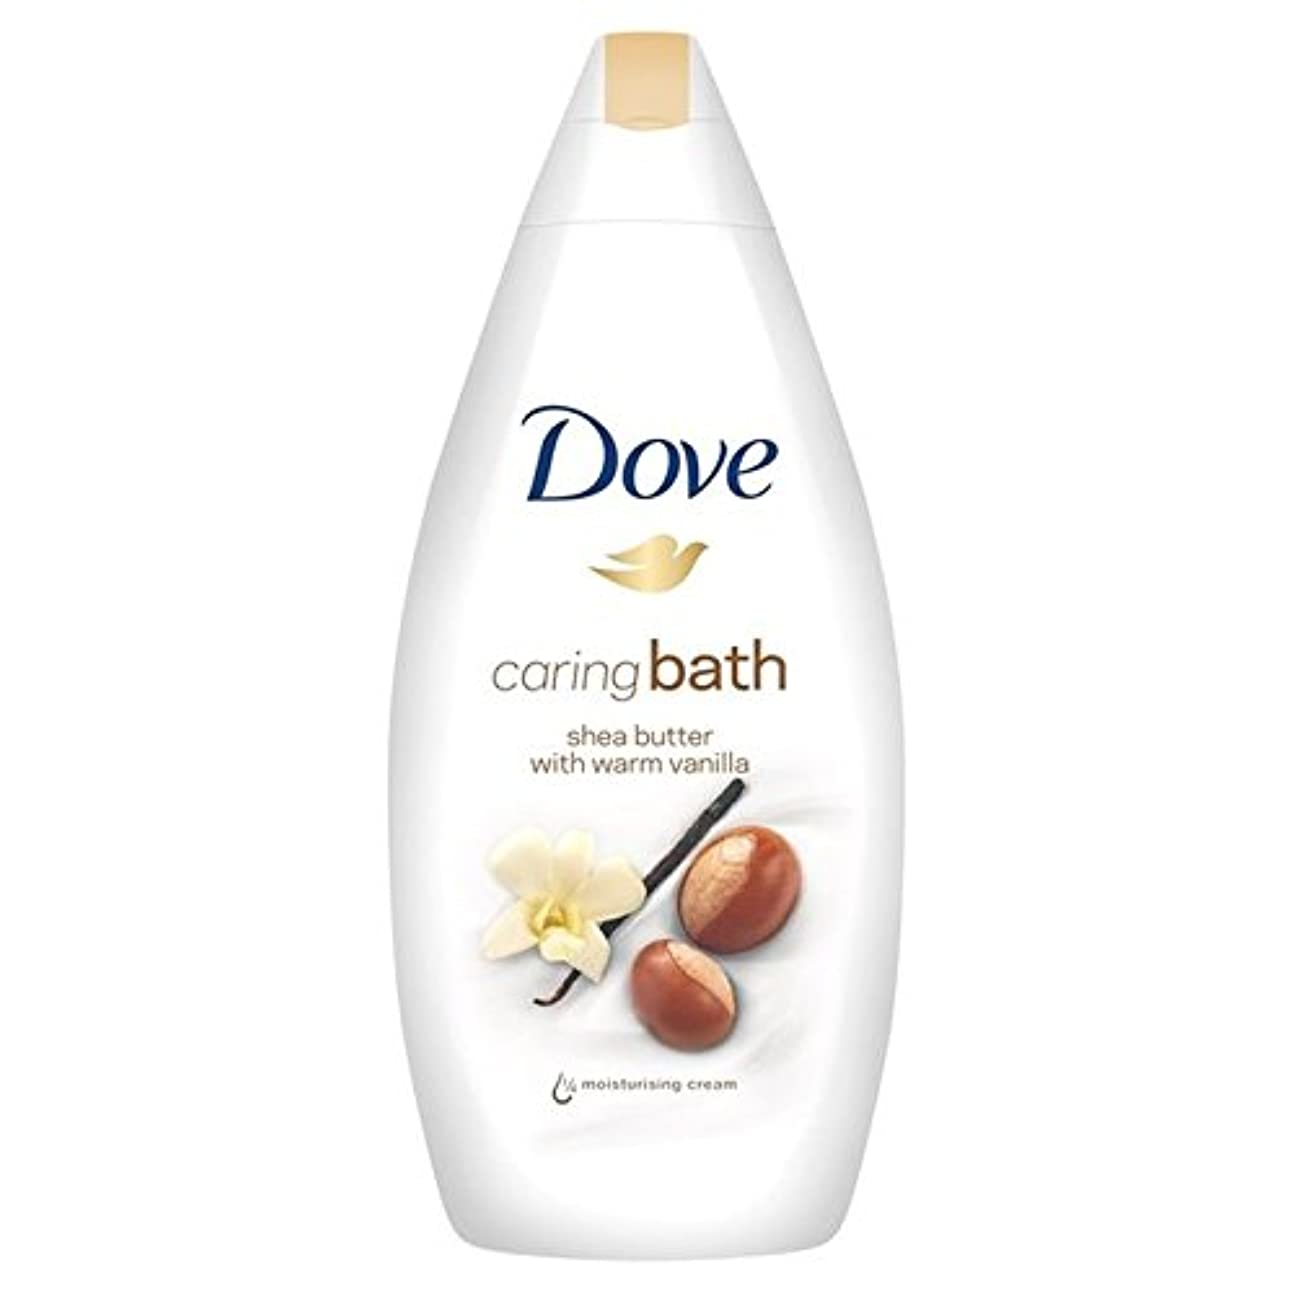 Dove Purely Pampering Shea Butter Caring Cream Bath 500ml - 鳩純粋な贅沢シアバター思いやりのあるクリームバス500ミリリットル [並行輸入品]